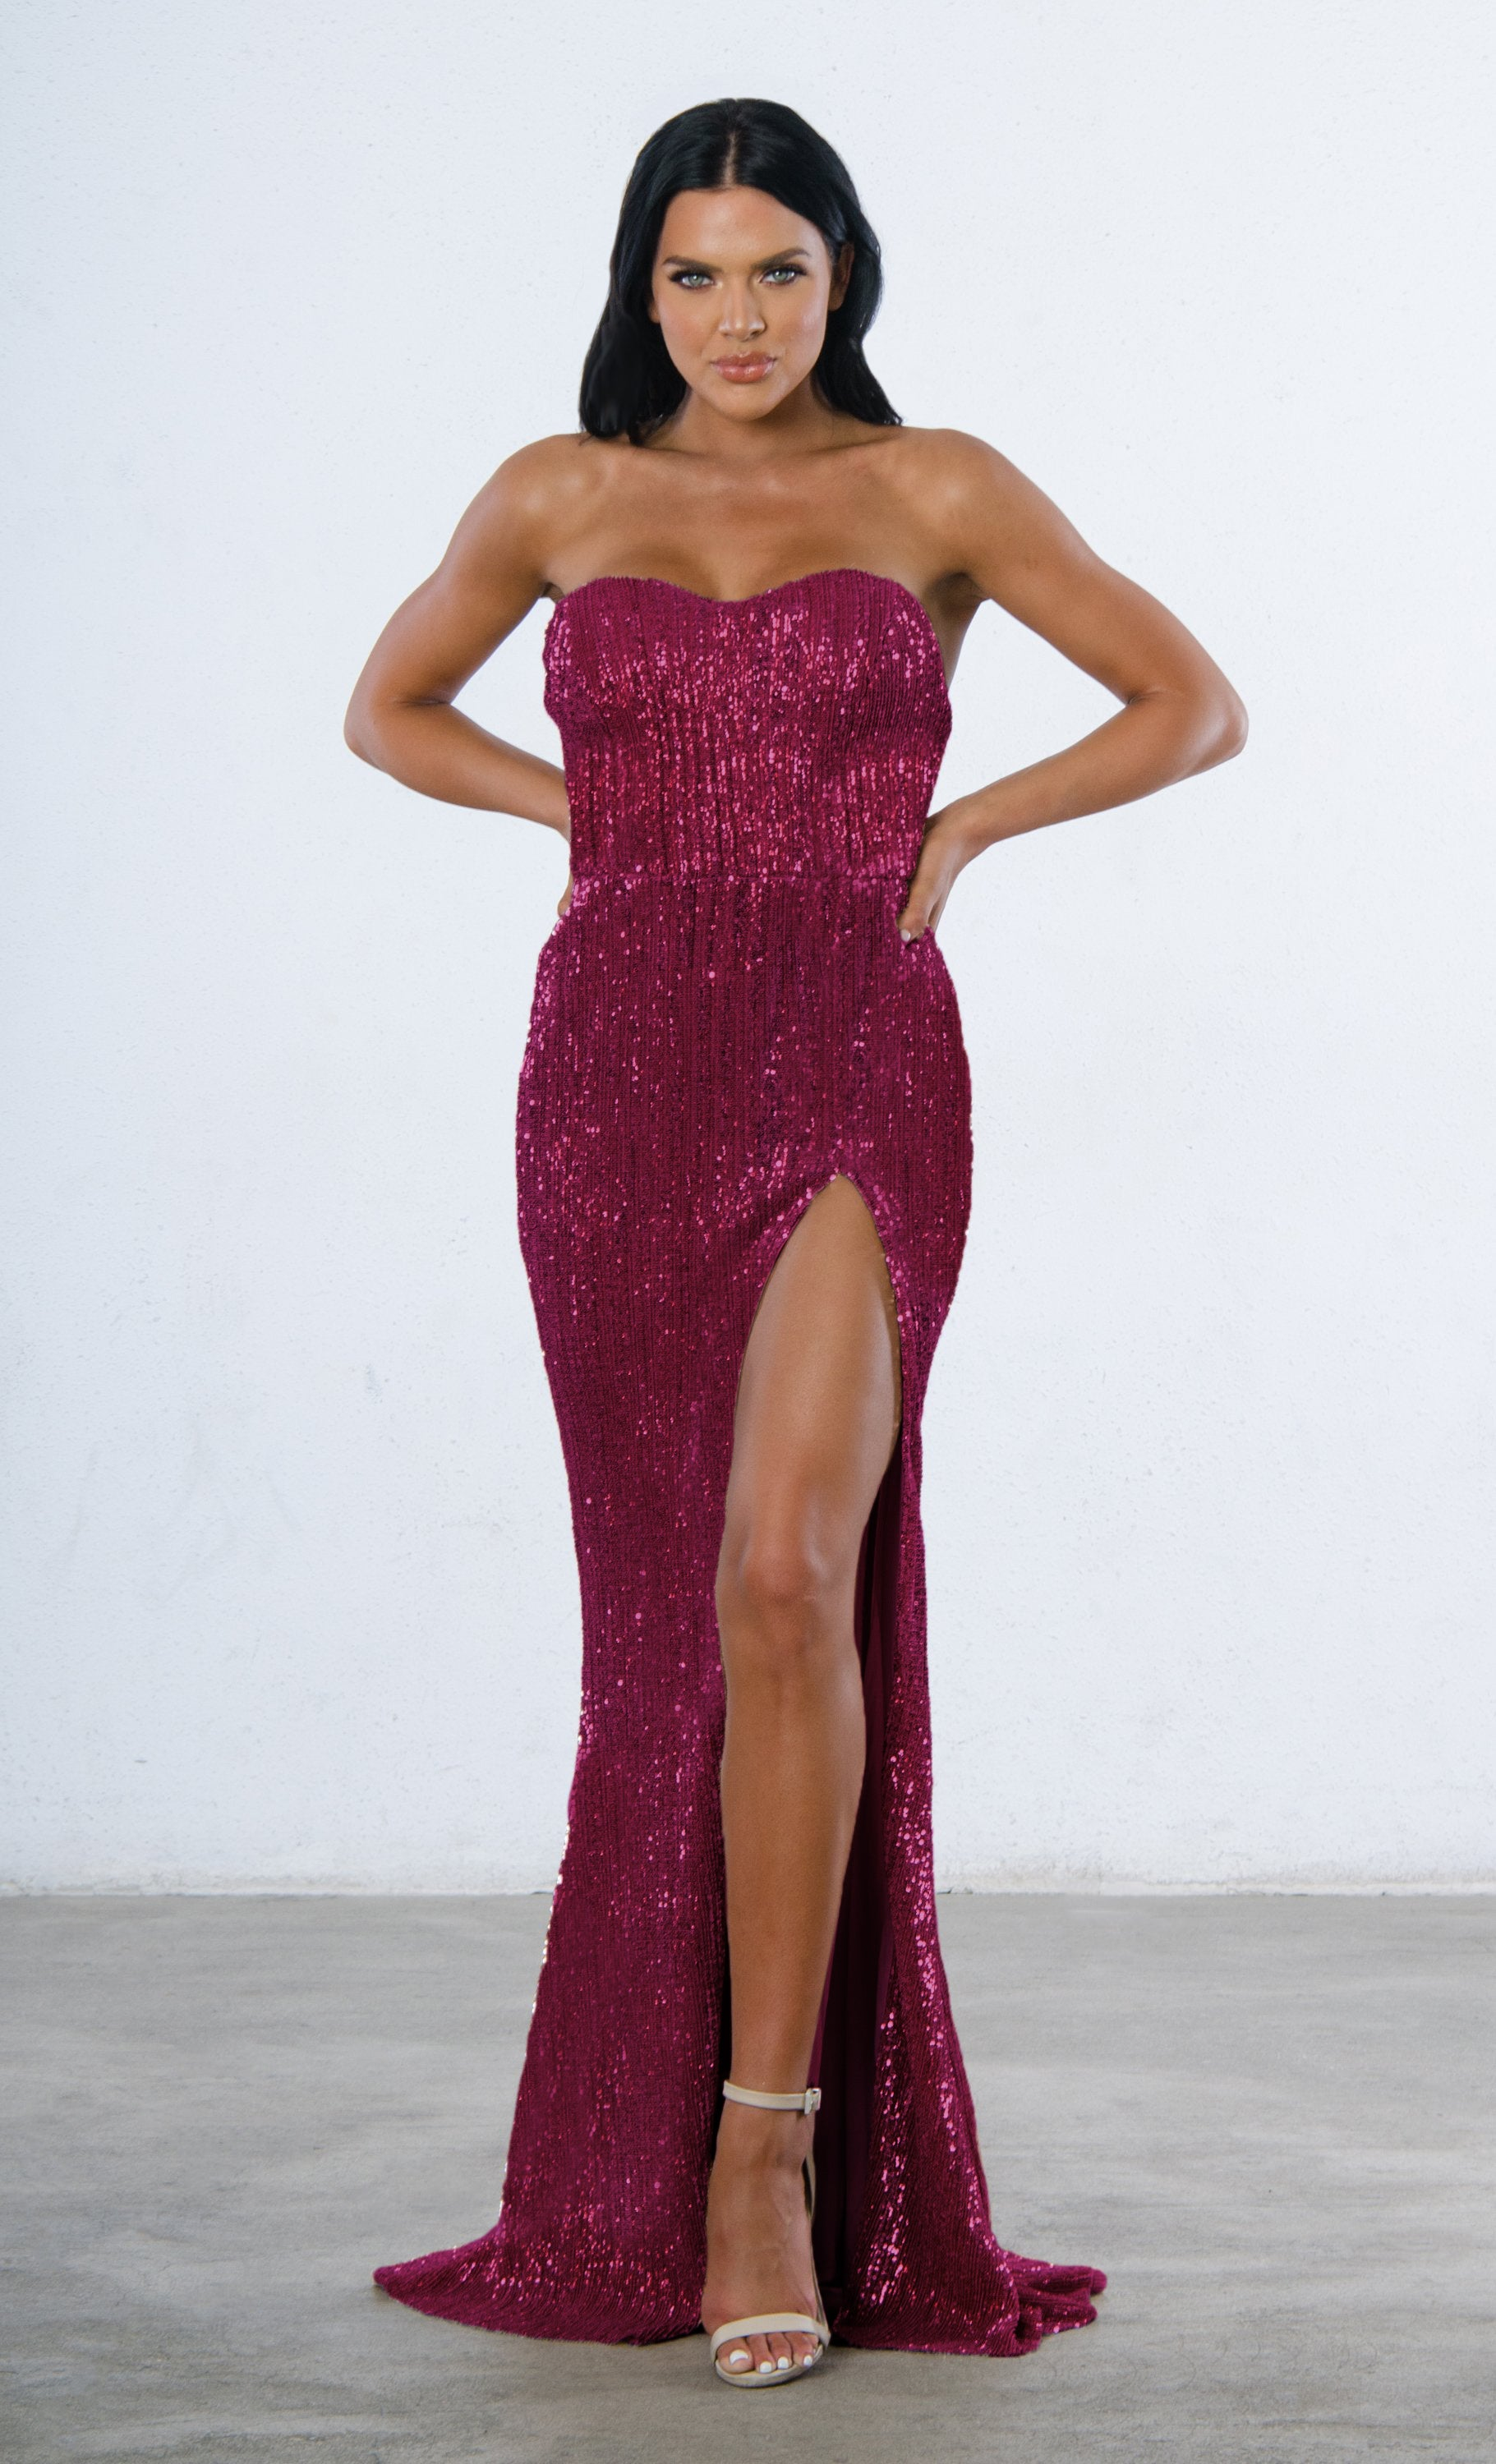 a2dc41695dd Indie XO Show Me Some Love Burgundy Wine Red Sequin Strapless Sweetheart  Neck High Slit Fishtail